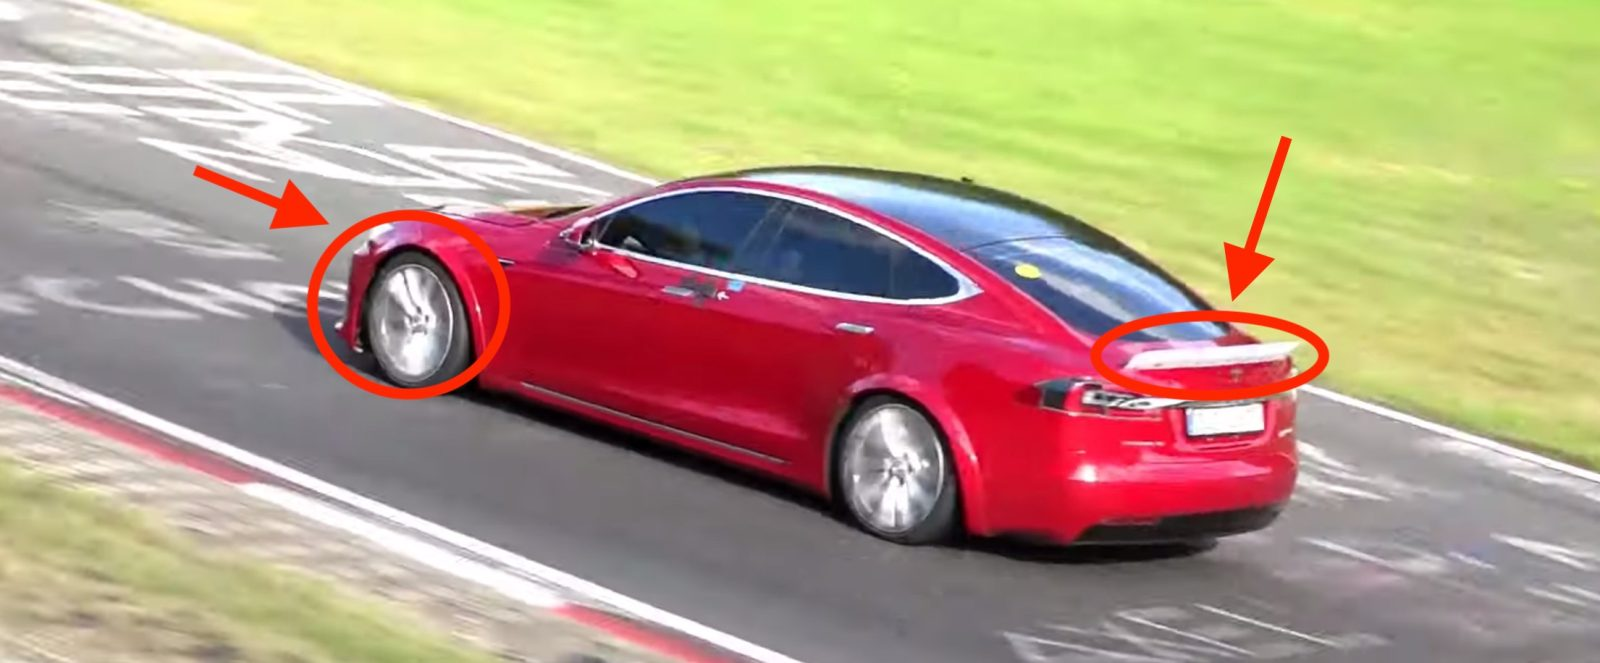 Elon Musk: Tesla Model S 'Plaid' with new rear-facing seats coming Oct/Nov 2020